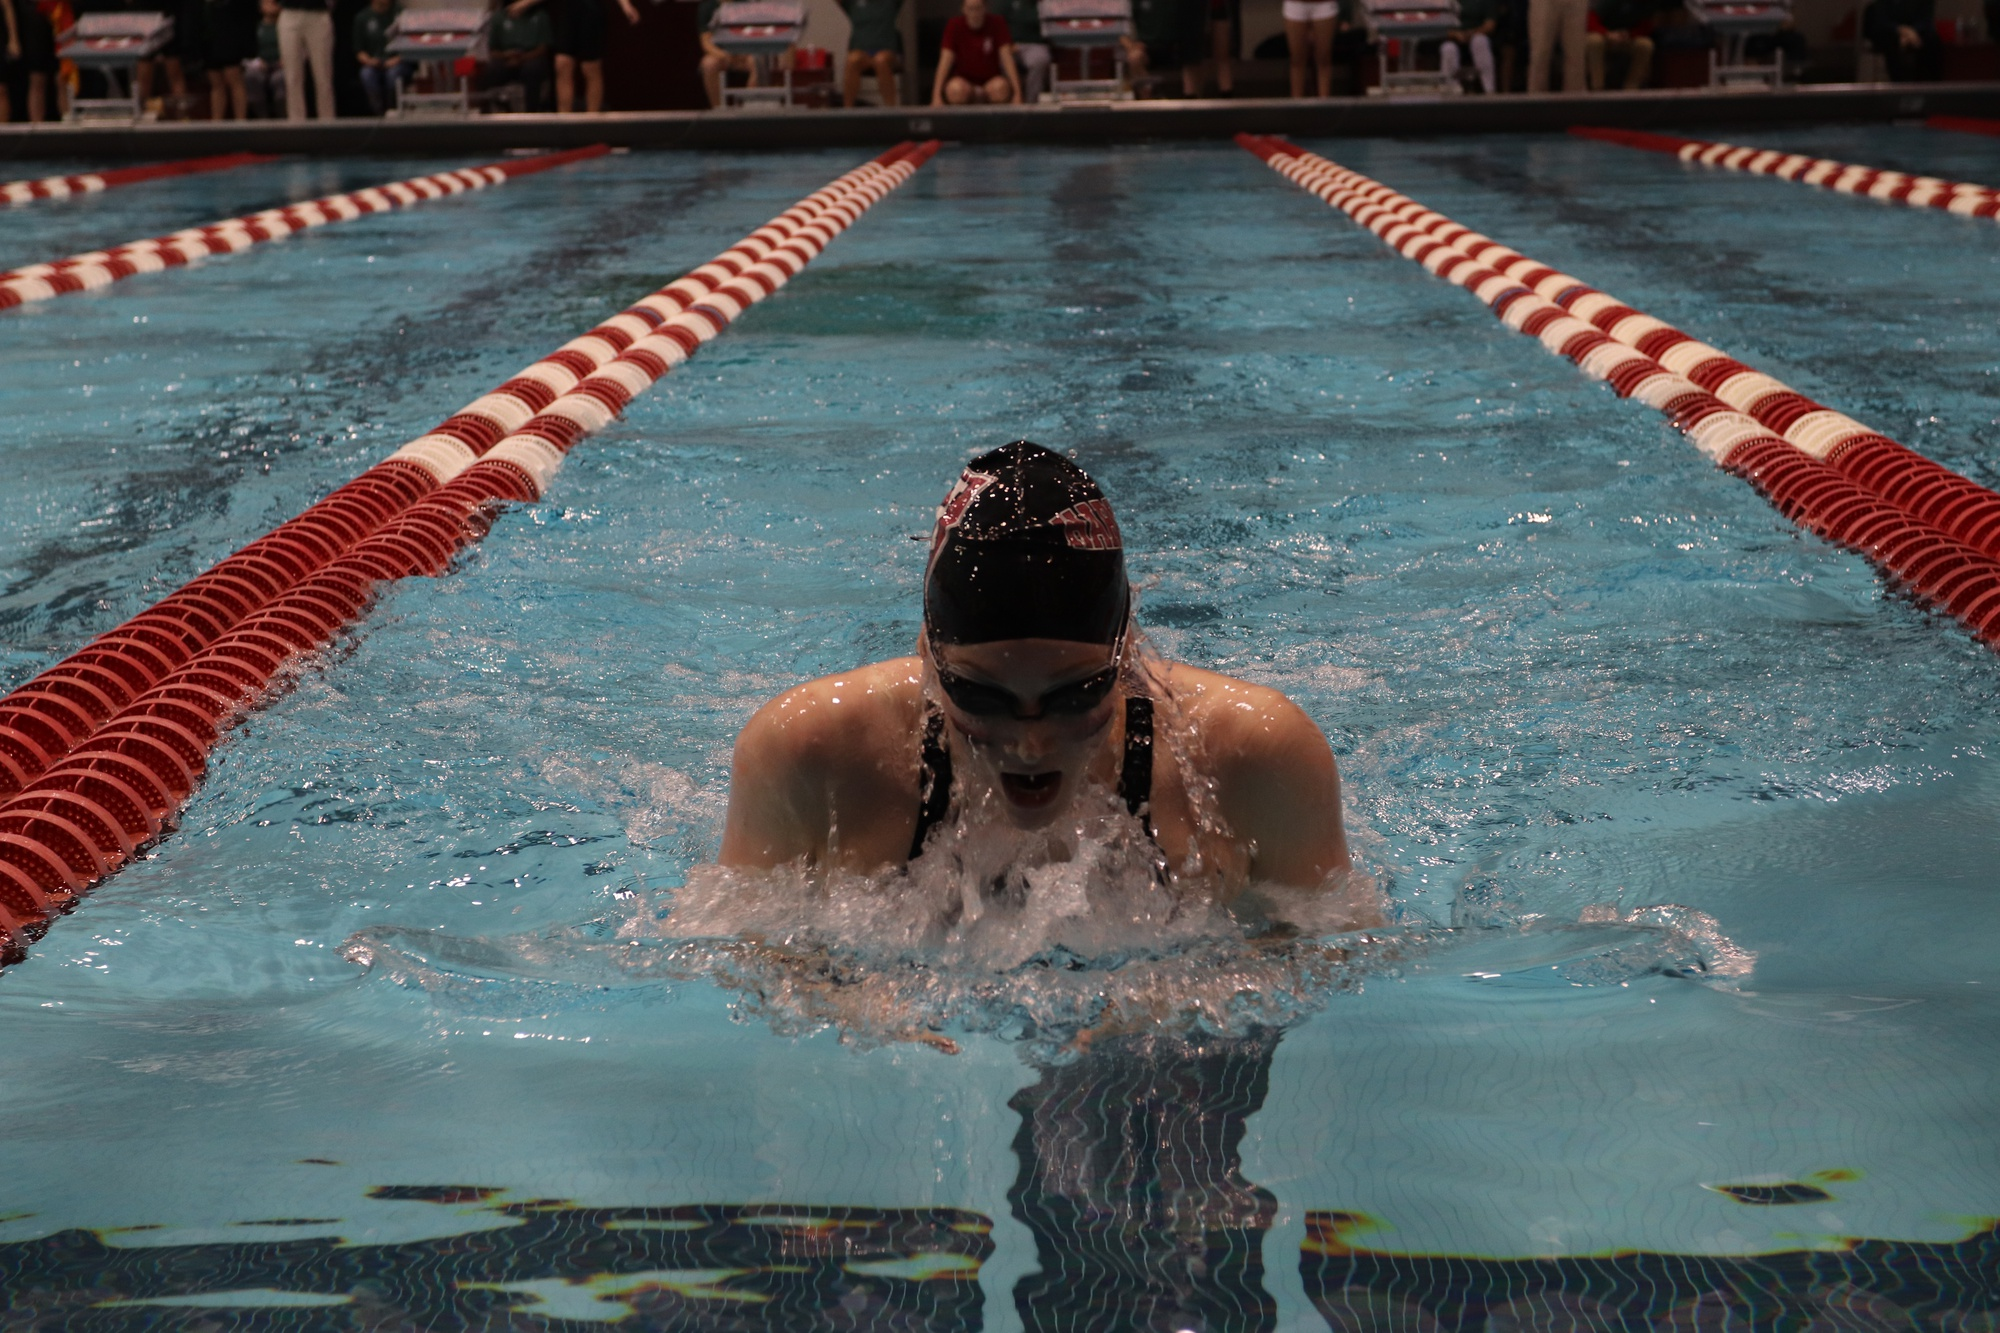 The men's and women's swimming teams will welcome 19 freshmen this season.